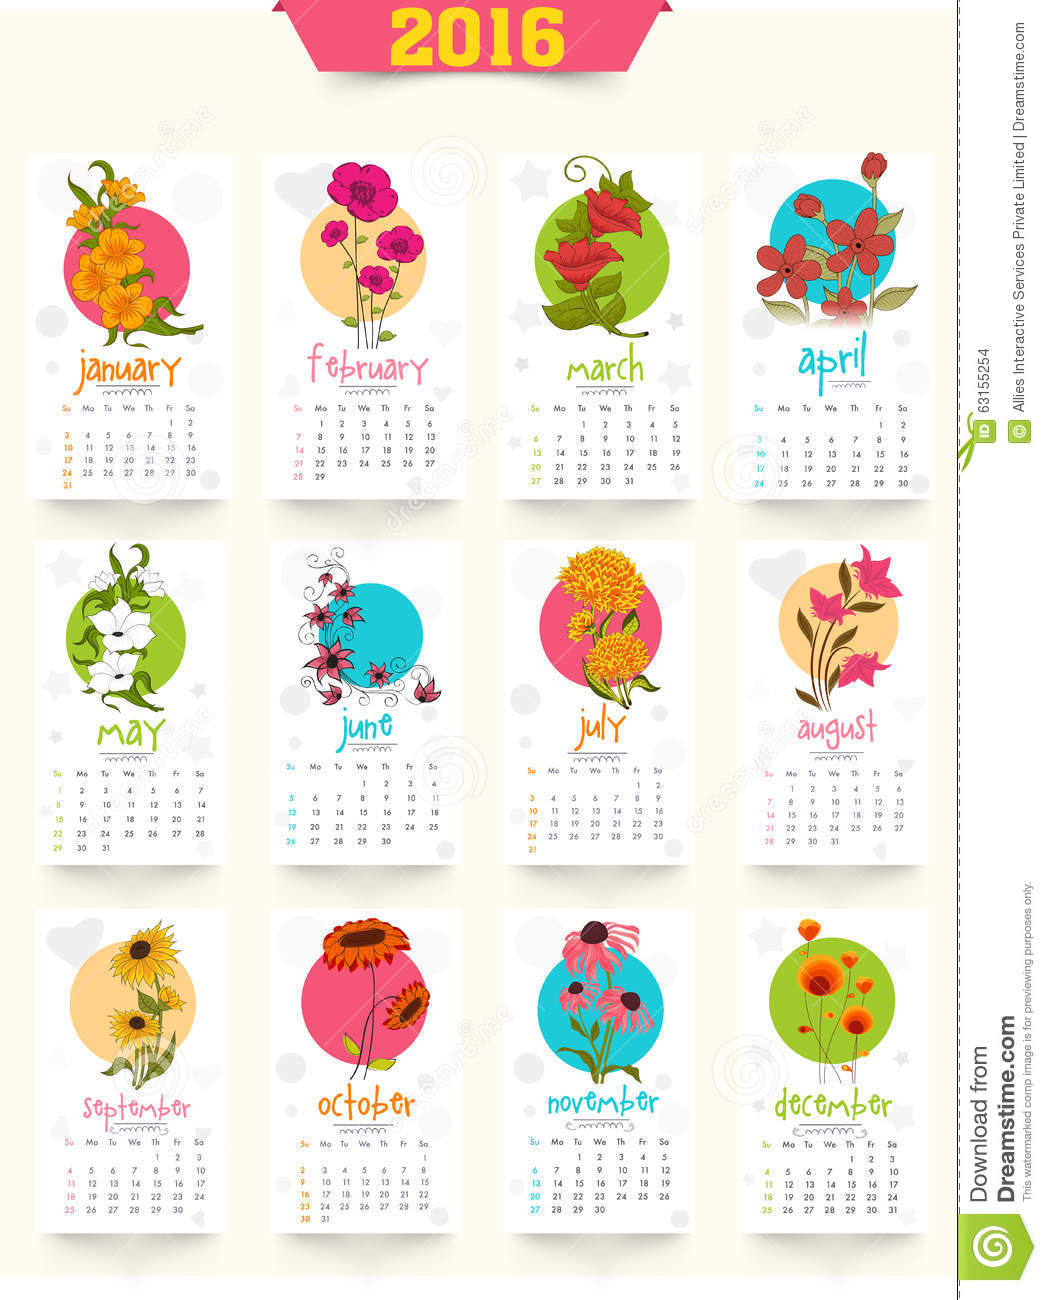 Yearly Calendar Design : Creative yearly calendar for new year celebration